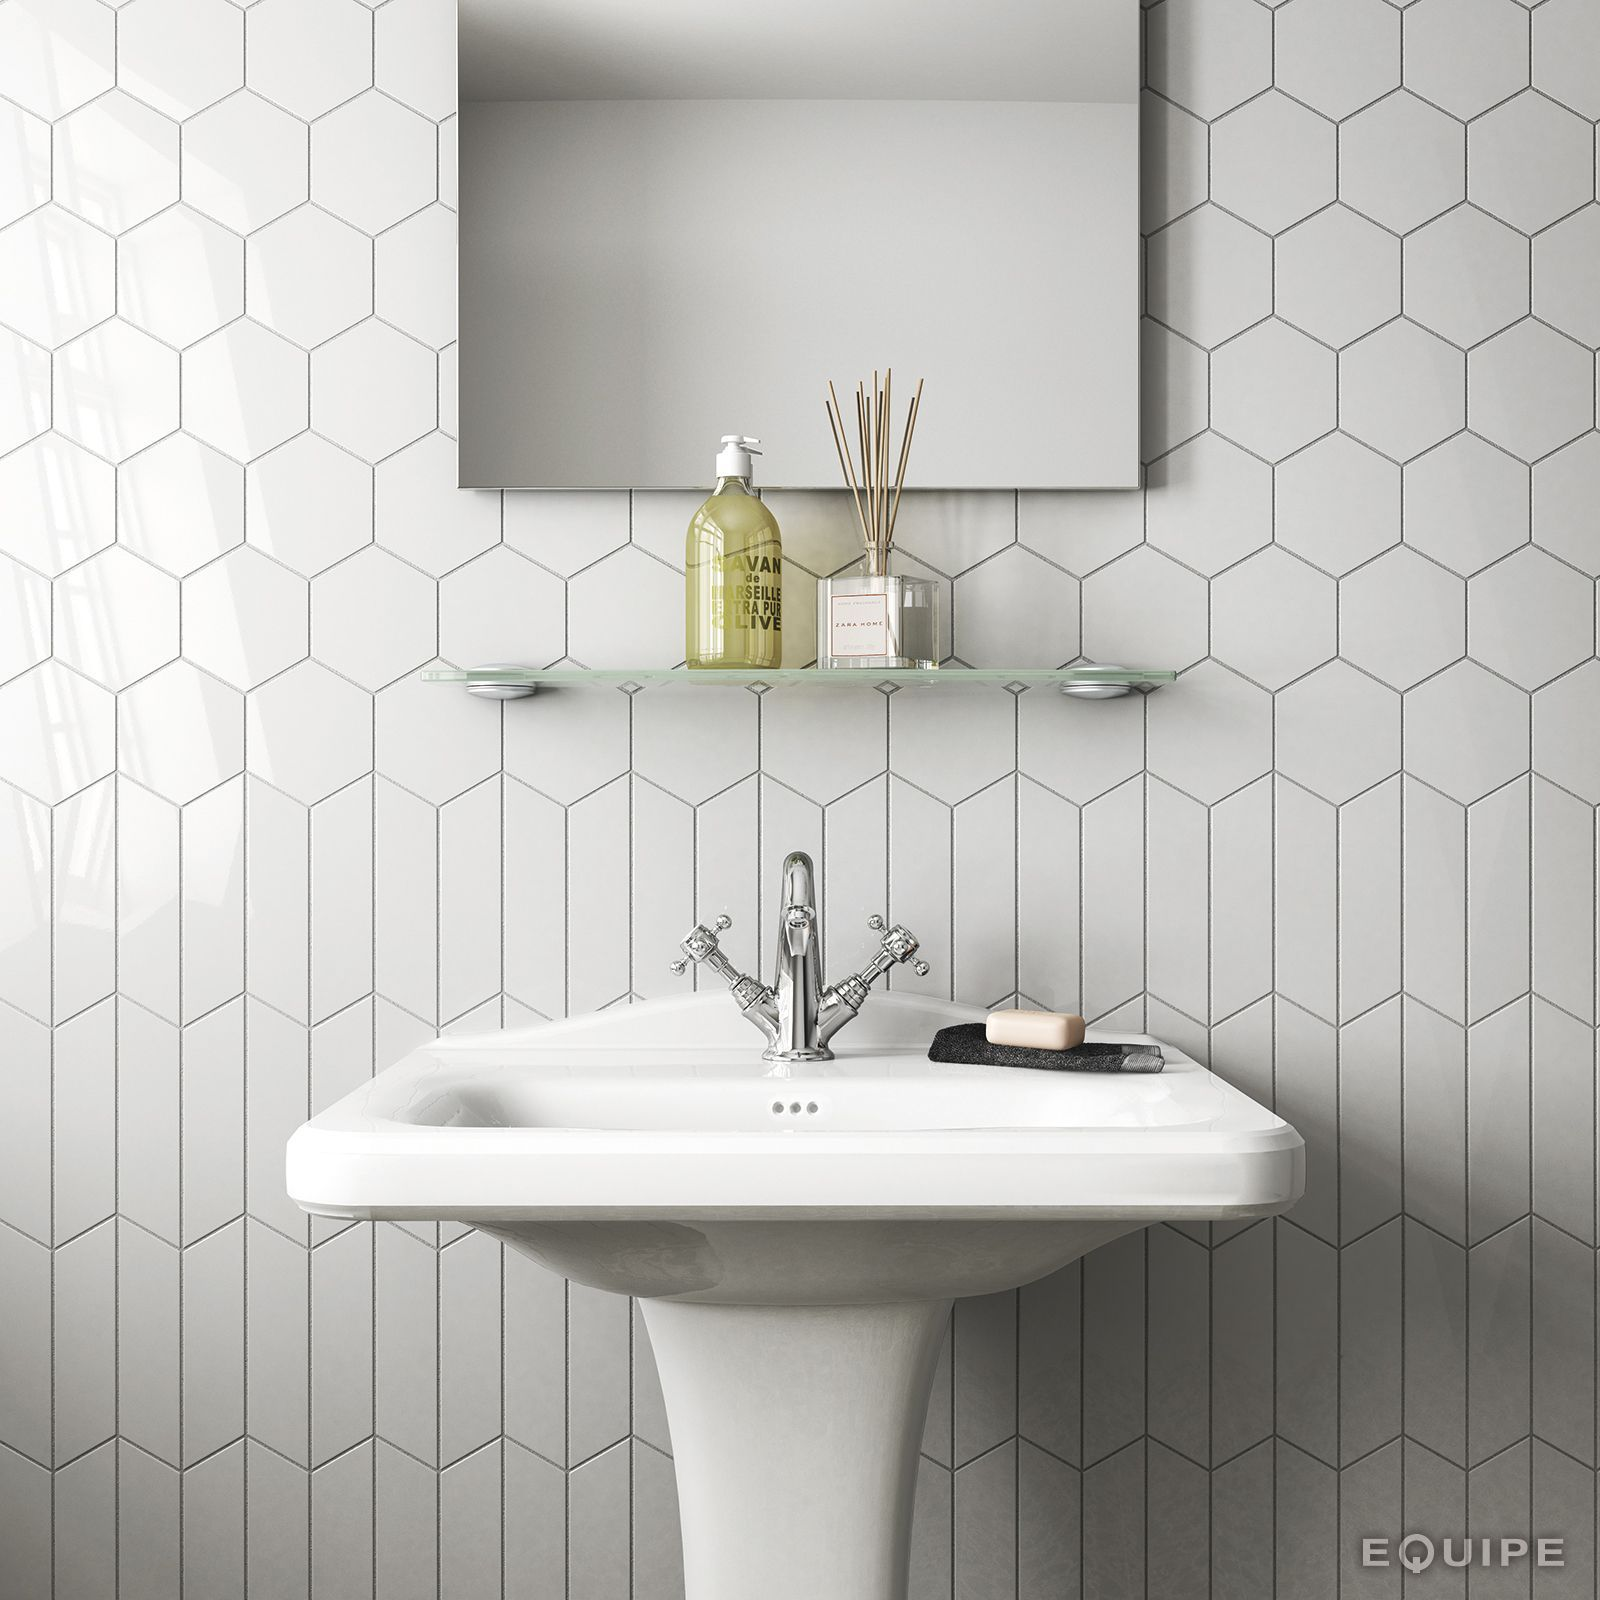 Luxury Bathroom Tile Patterns Ideas | Apartment remodeling ...